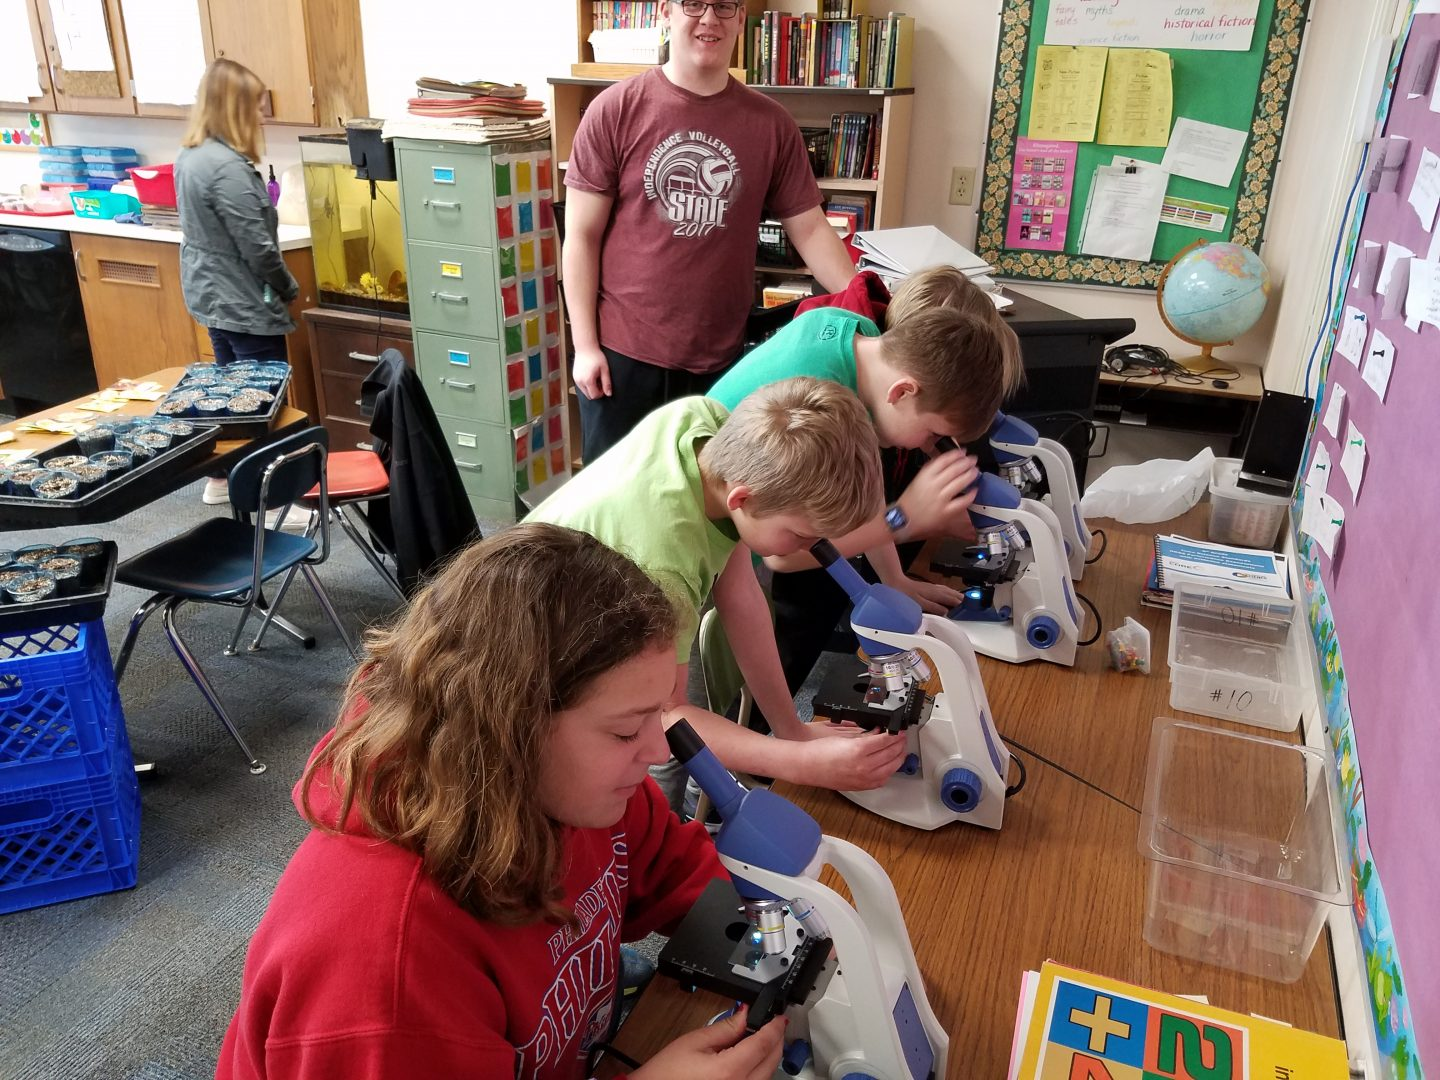 west students looking into microscopes